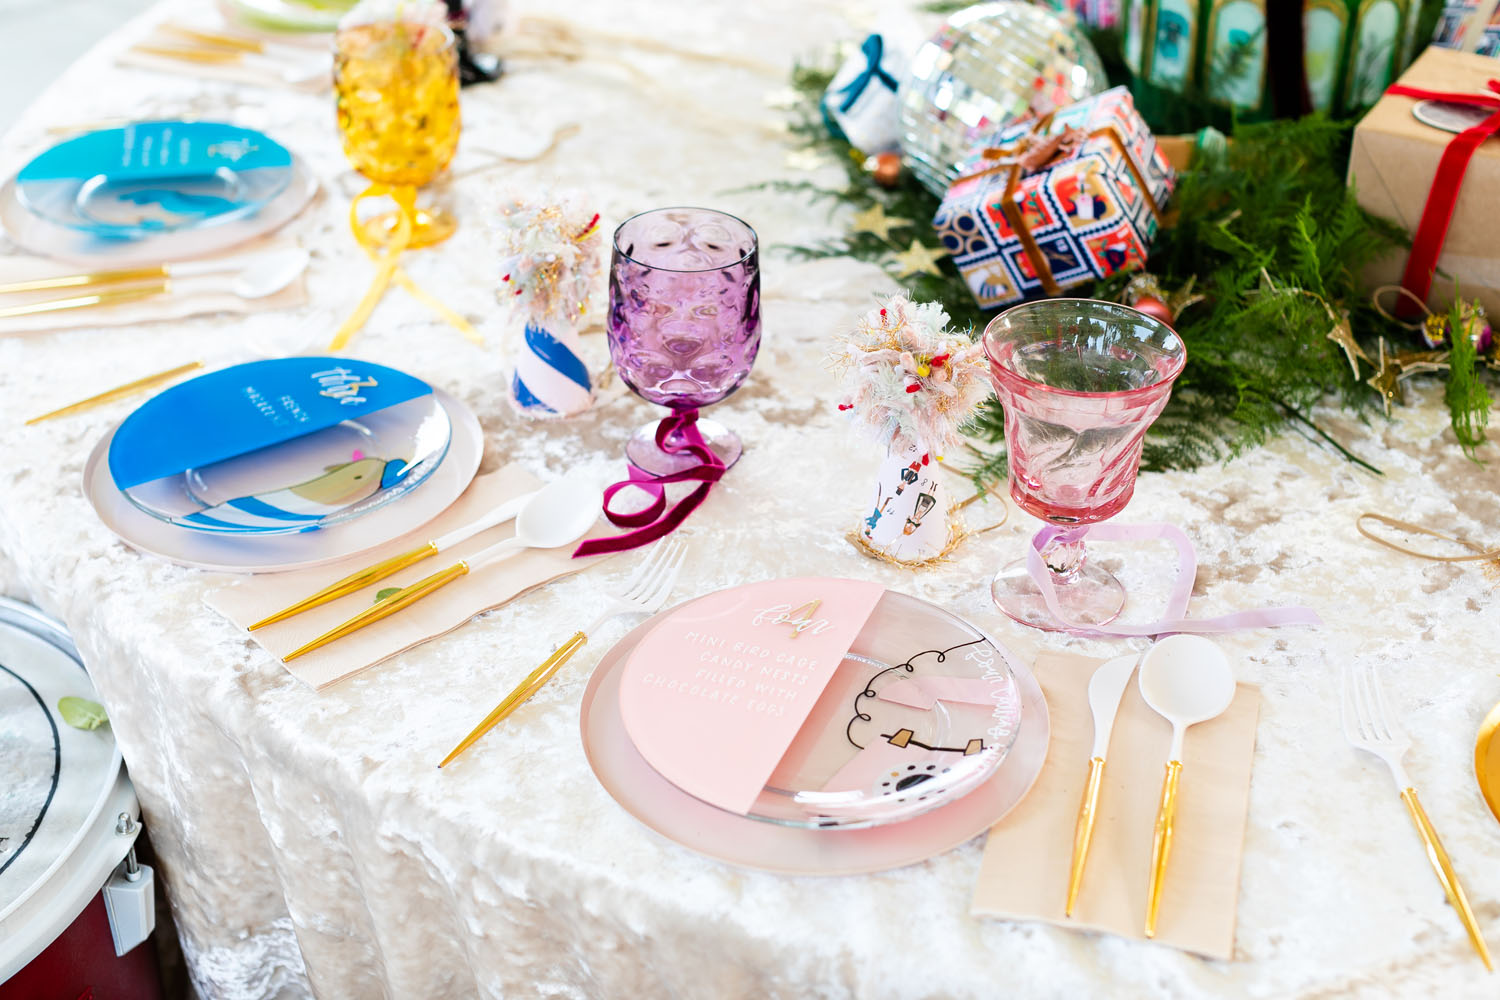 12 Days of Christmas Dinner Party